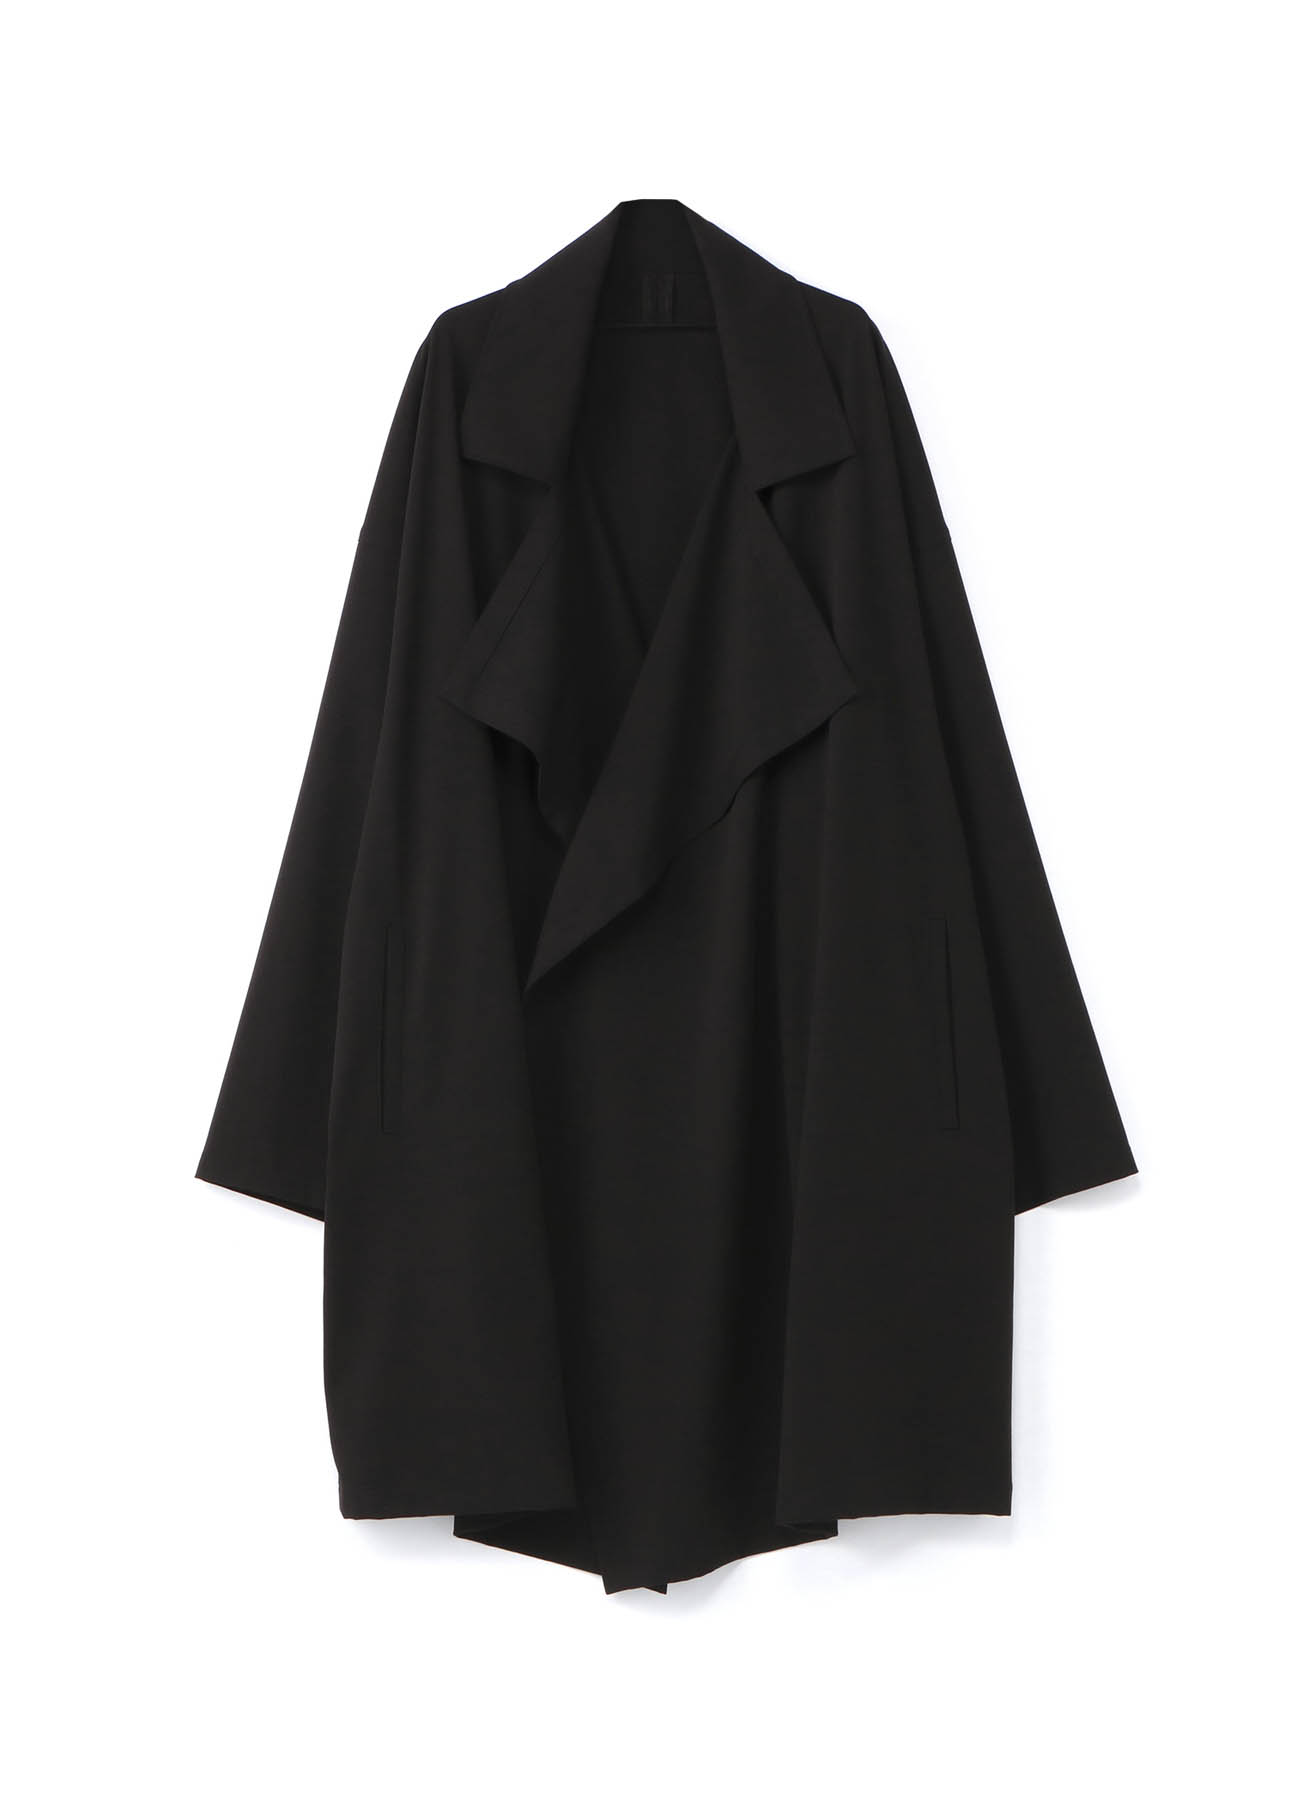 Pe/Rayon Gabardine Stretch Frame Double Collar Drape Coat